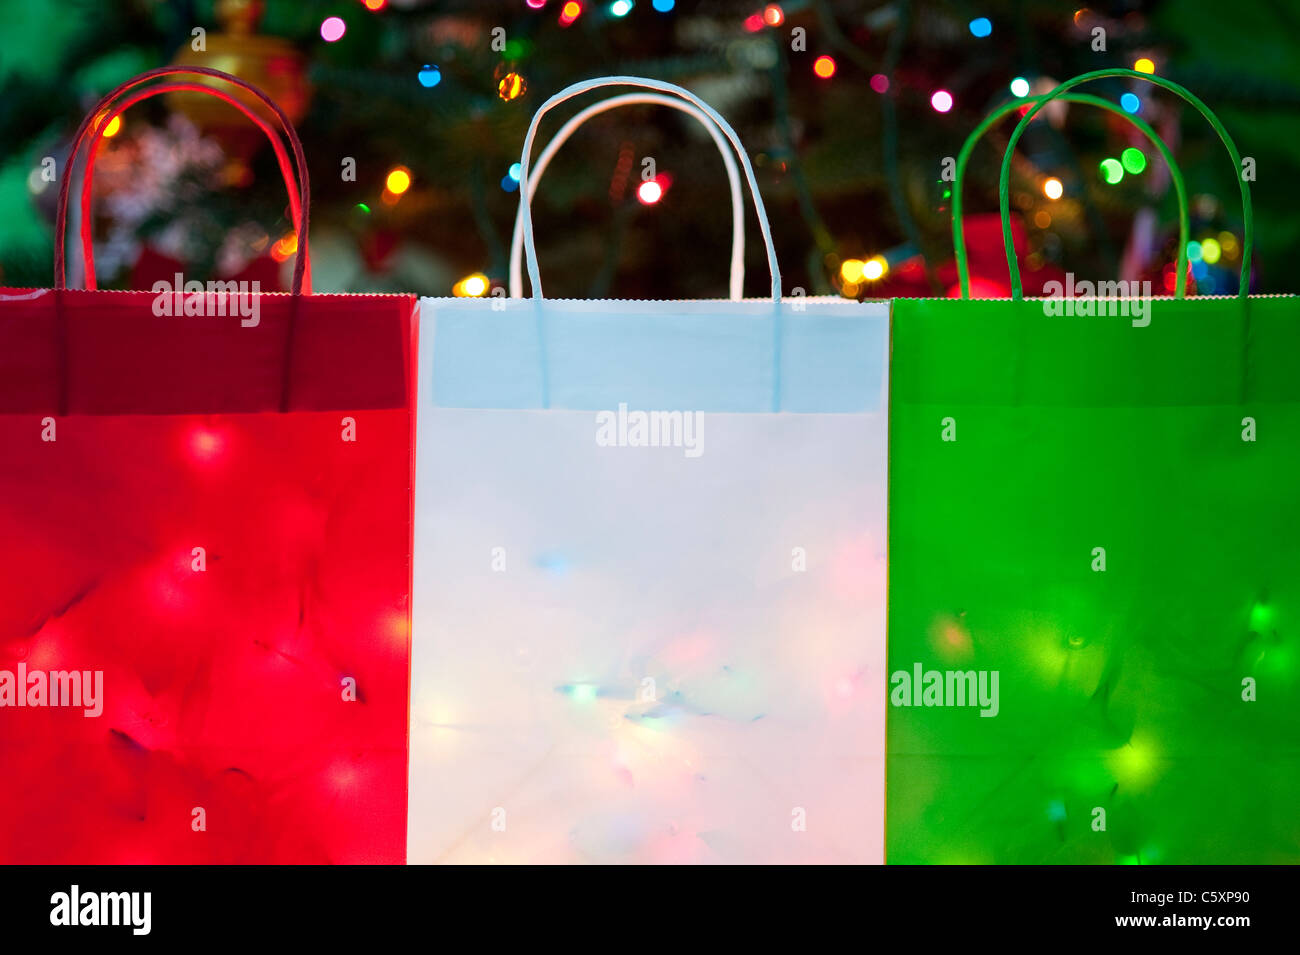 Colorful Christmas bags filled with Christmas Lights Stock Photo